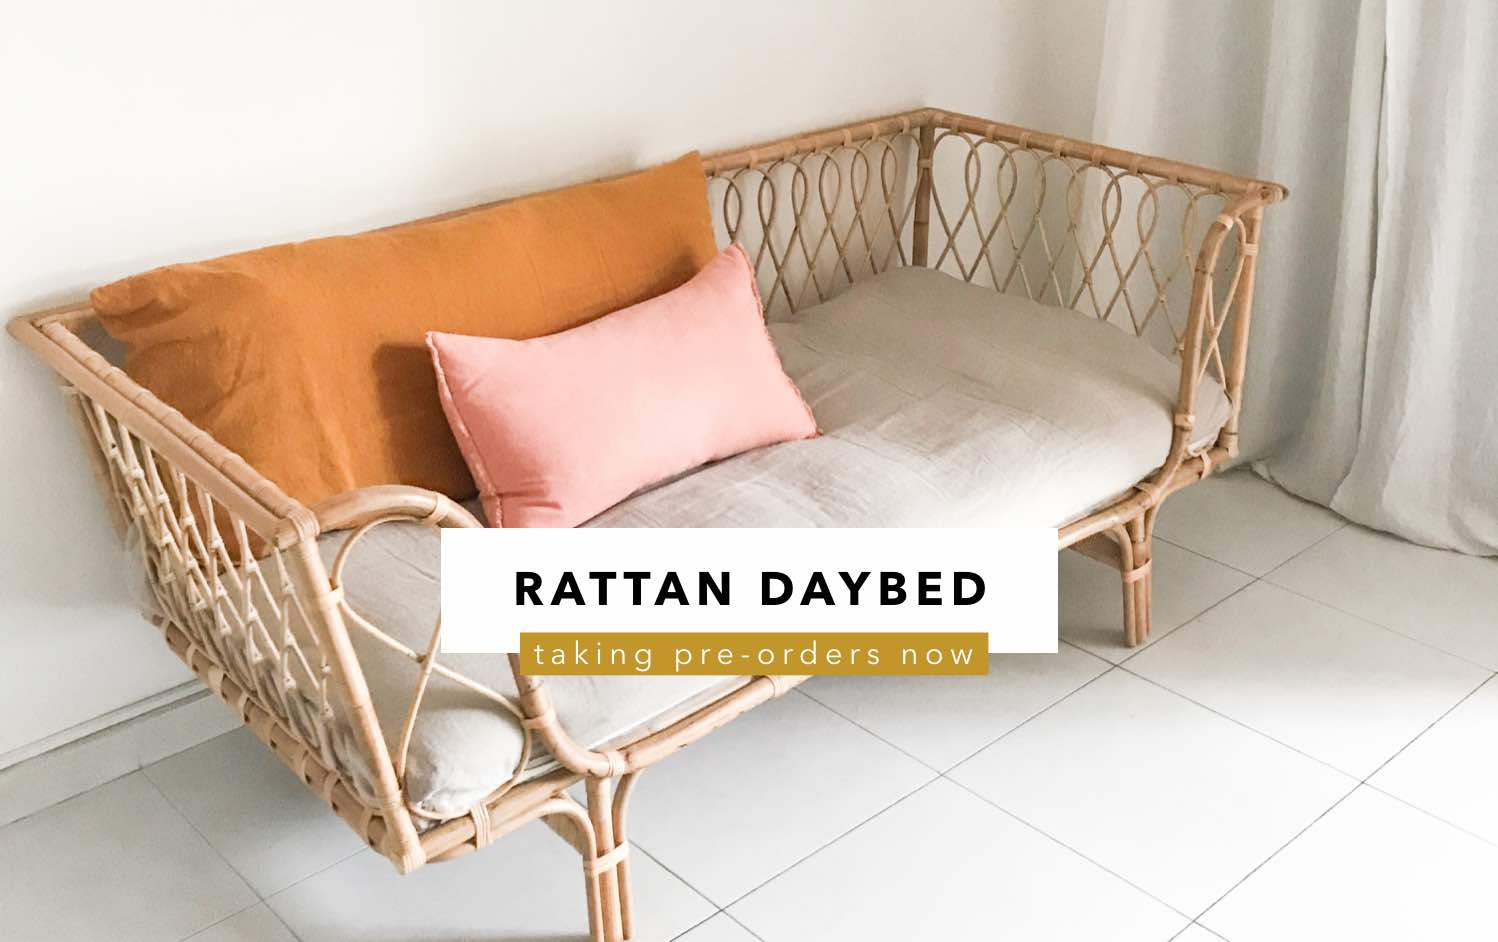 stylodeco.com-rattan-daybed-pre-orders-2018.jpg